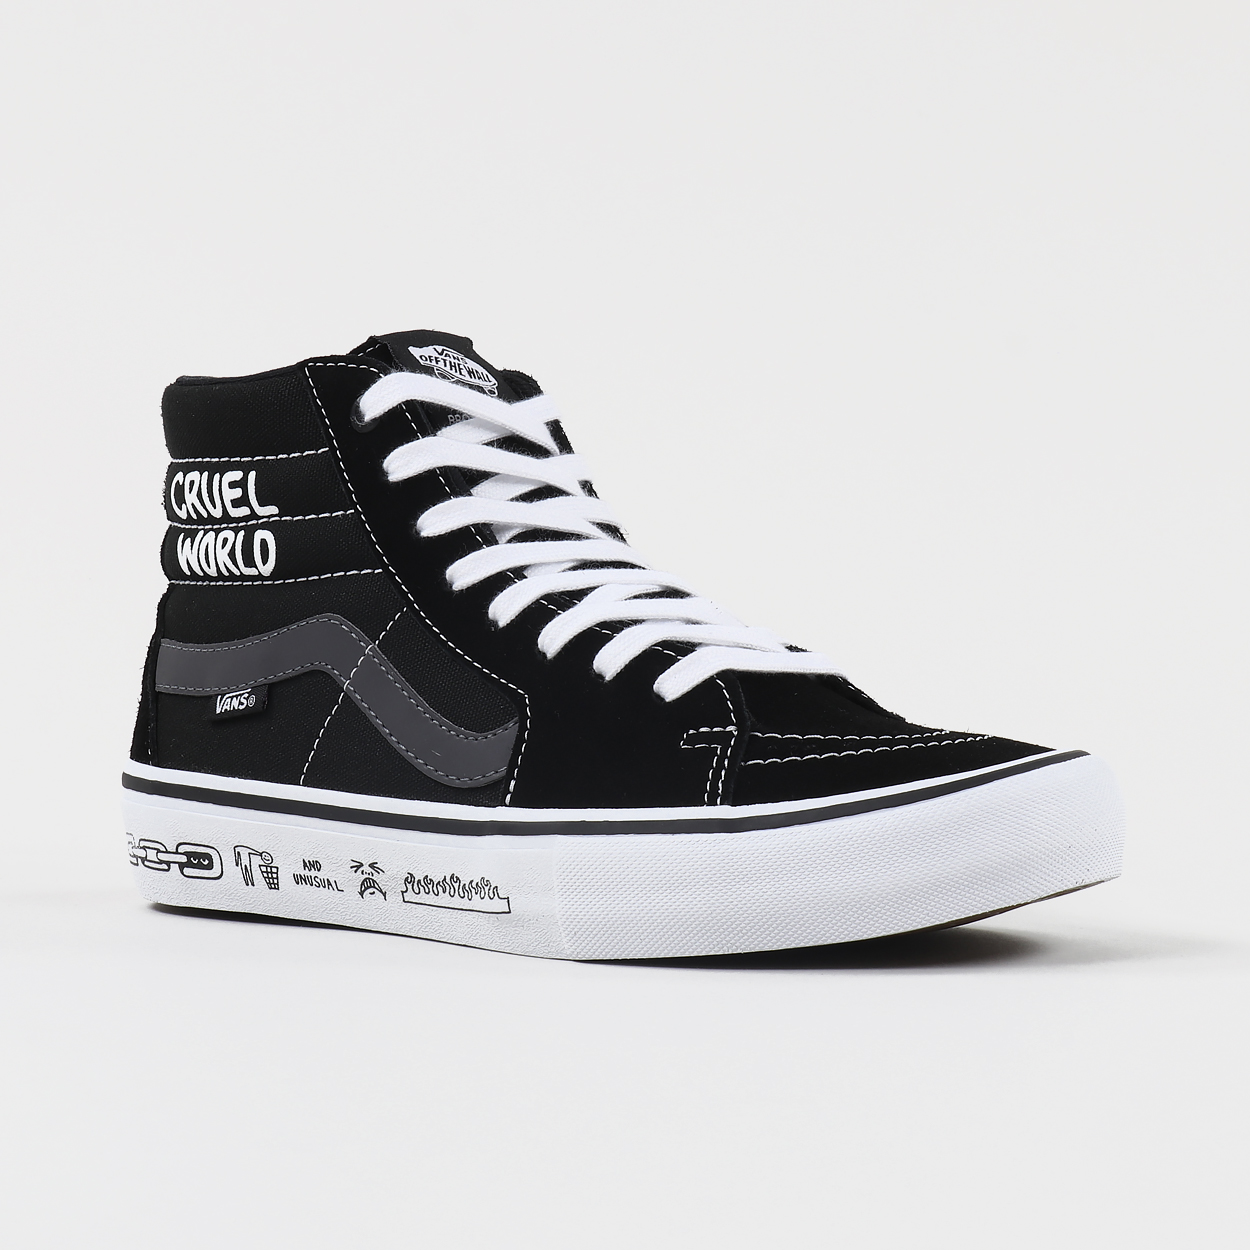 48f7f9485cb A pair of Sk8-Hi Pro shoes from Vans  collaboration with BMX company Cult.  The shoes are made from suede